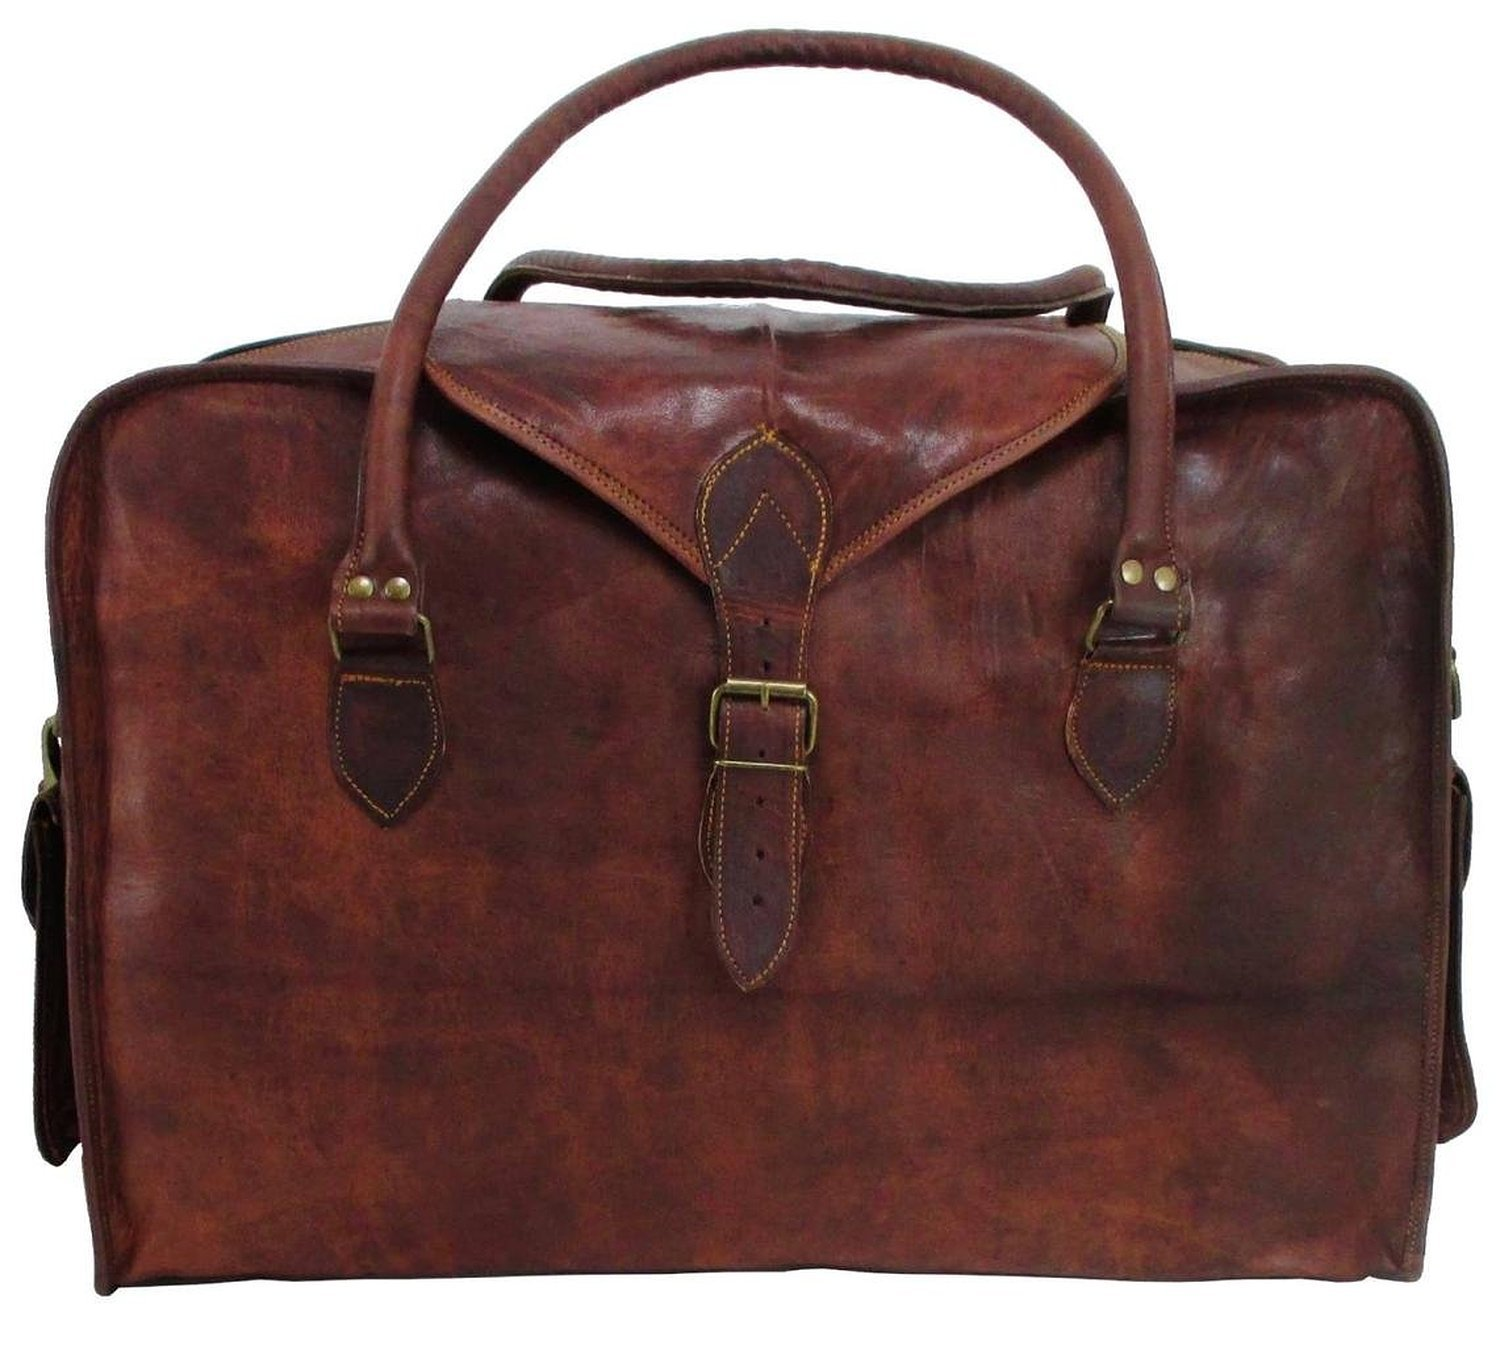 21'' Mens Retro Style Carry on Travel Luggage Flap Duffle Vintage Leather Duffle Bag